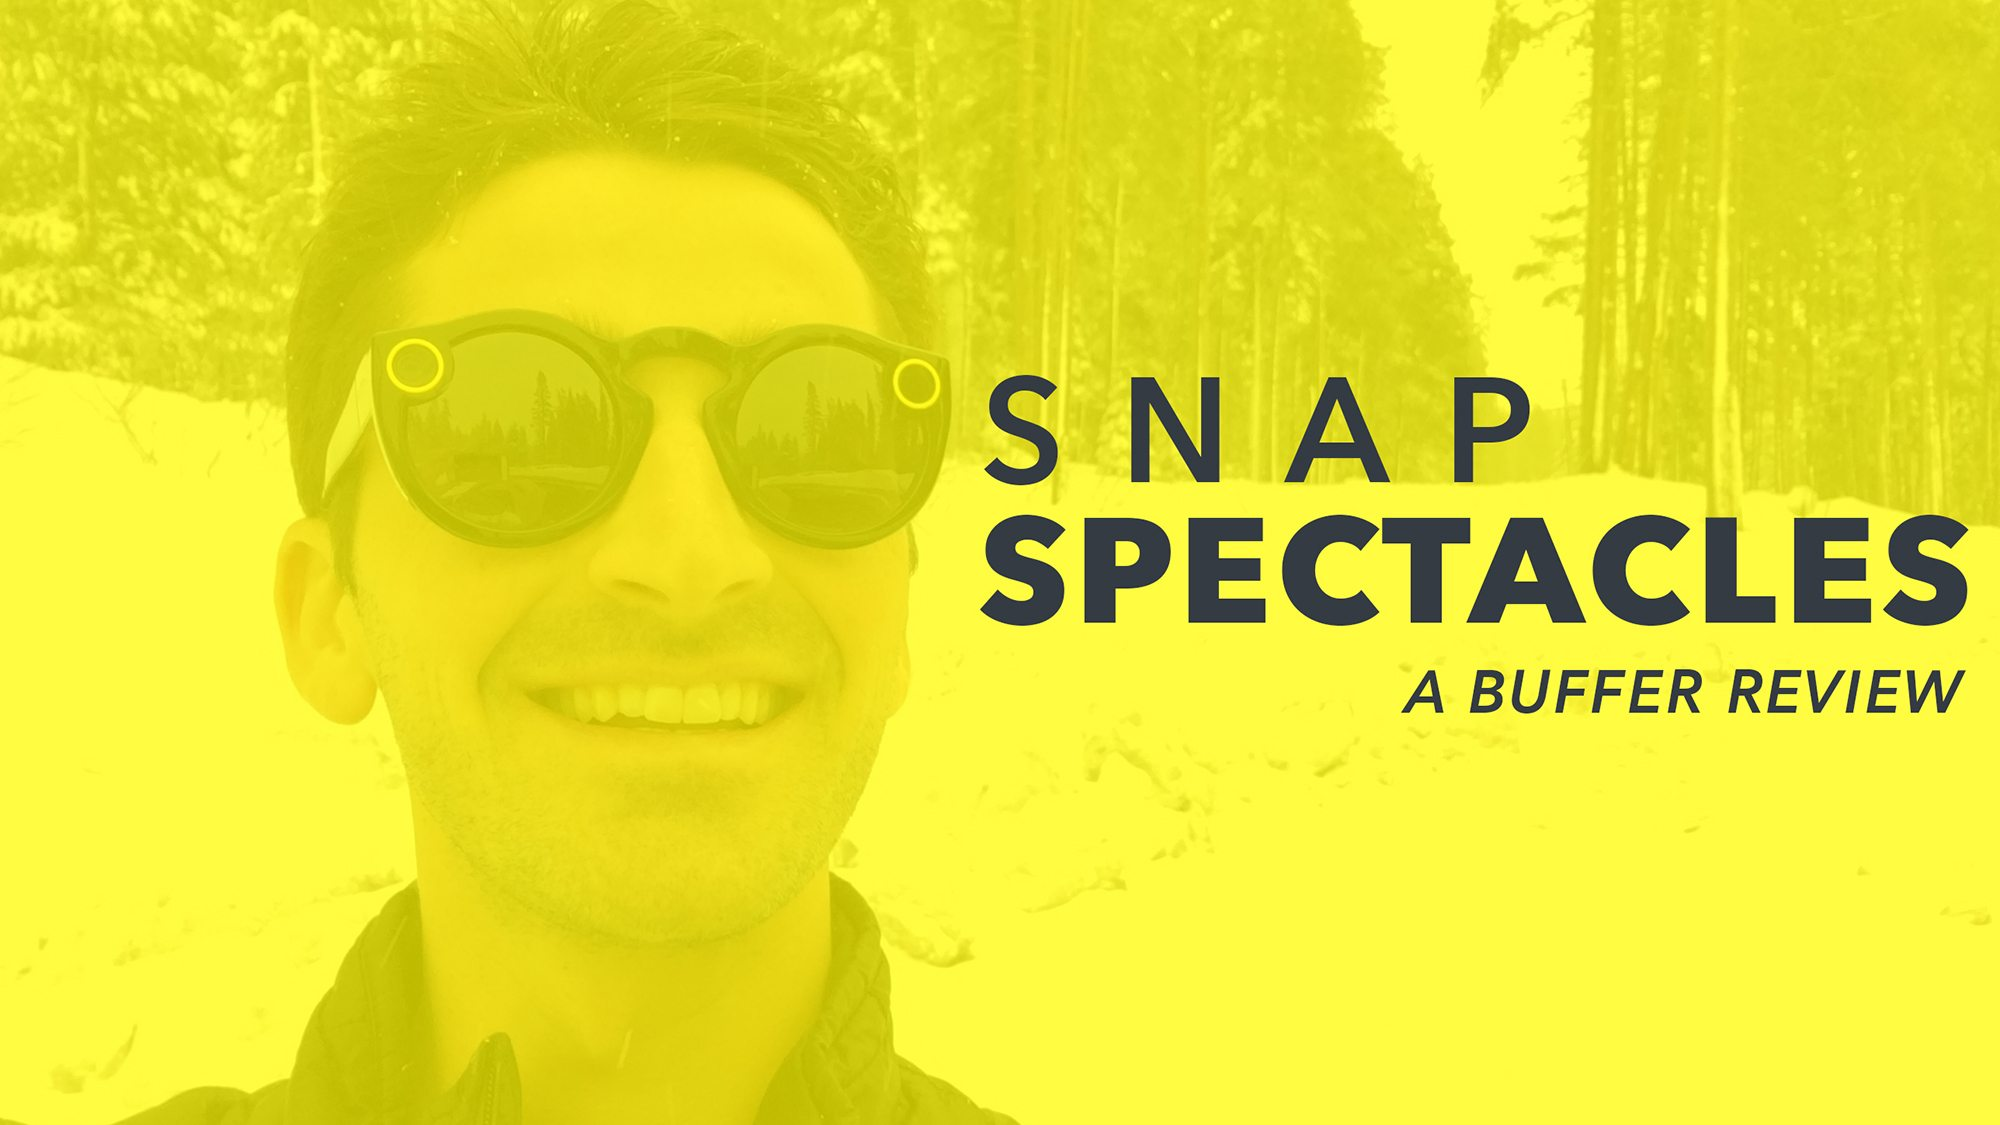 Snap Spectacles a Buffer Review